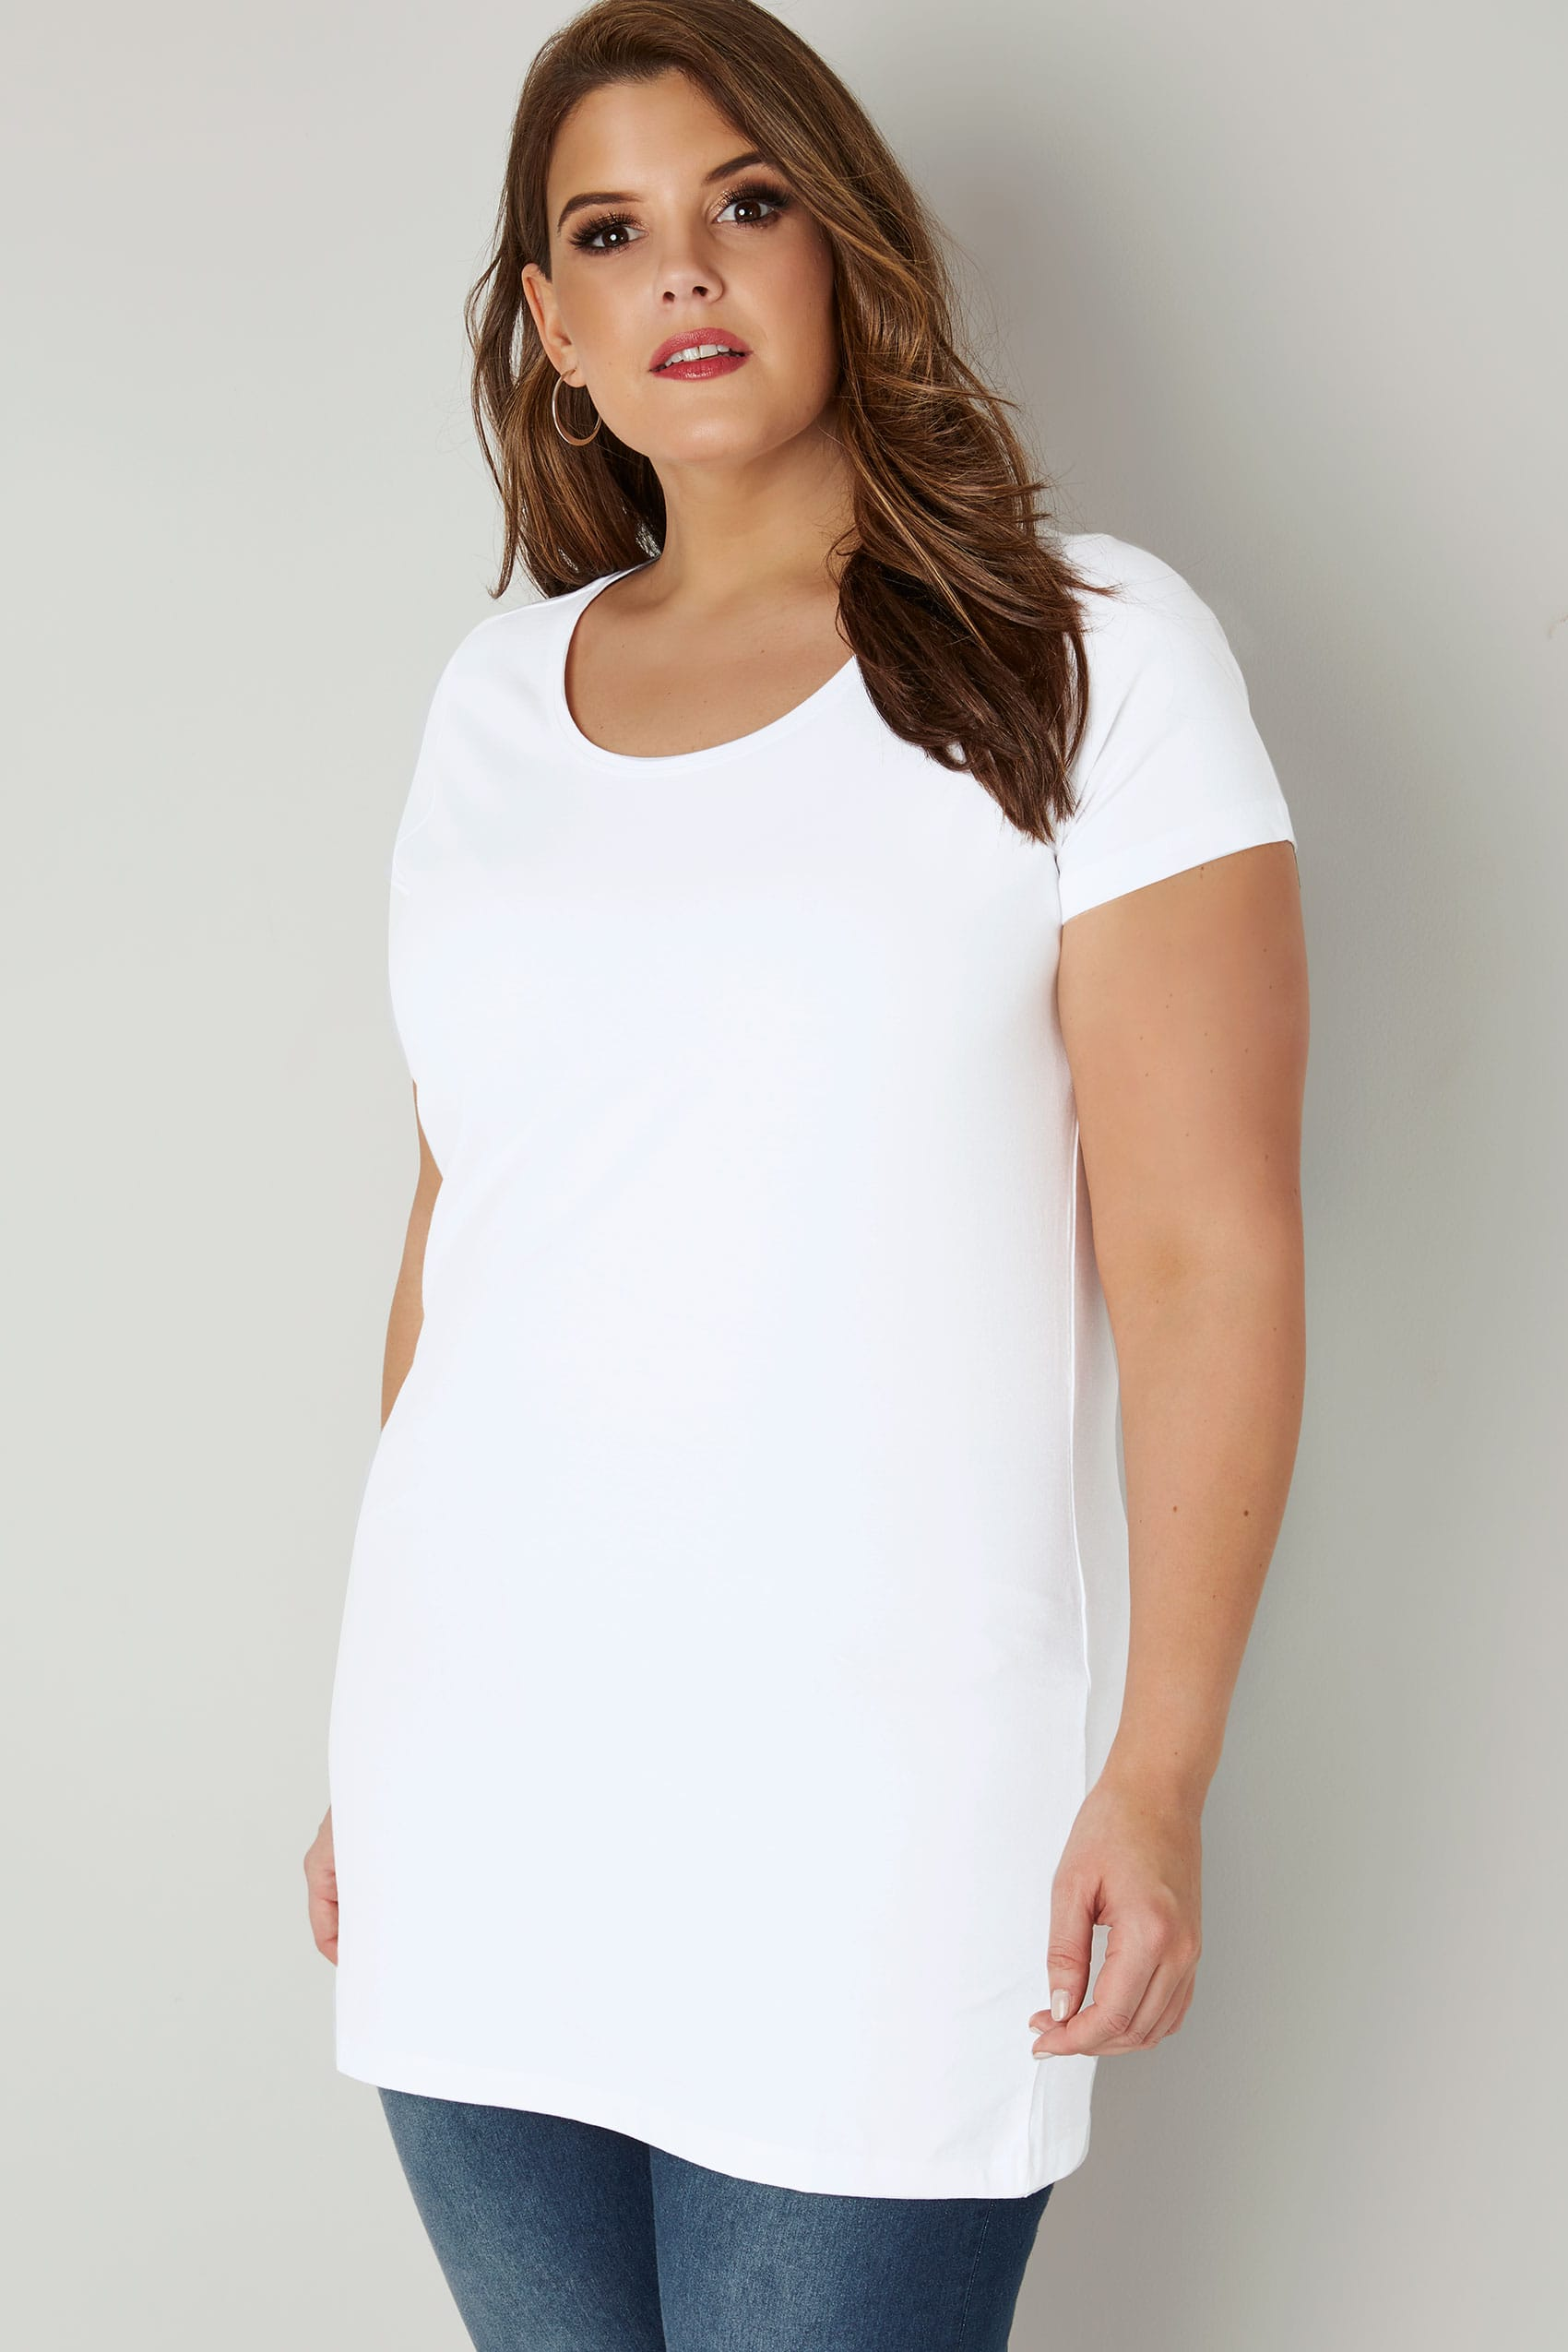 White Scoop Neck Longline Jersey T Shirt Plus Size 16 To 36